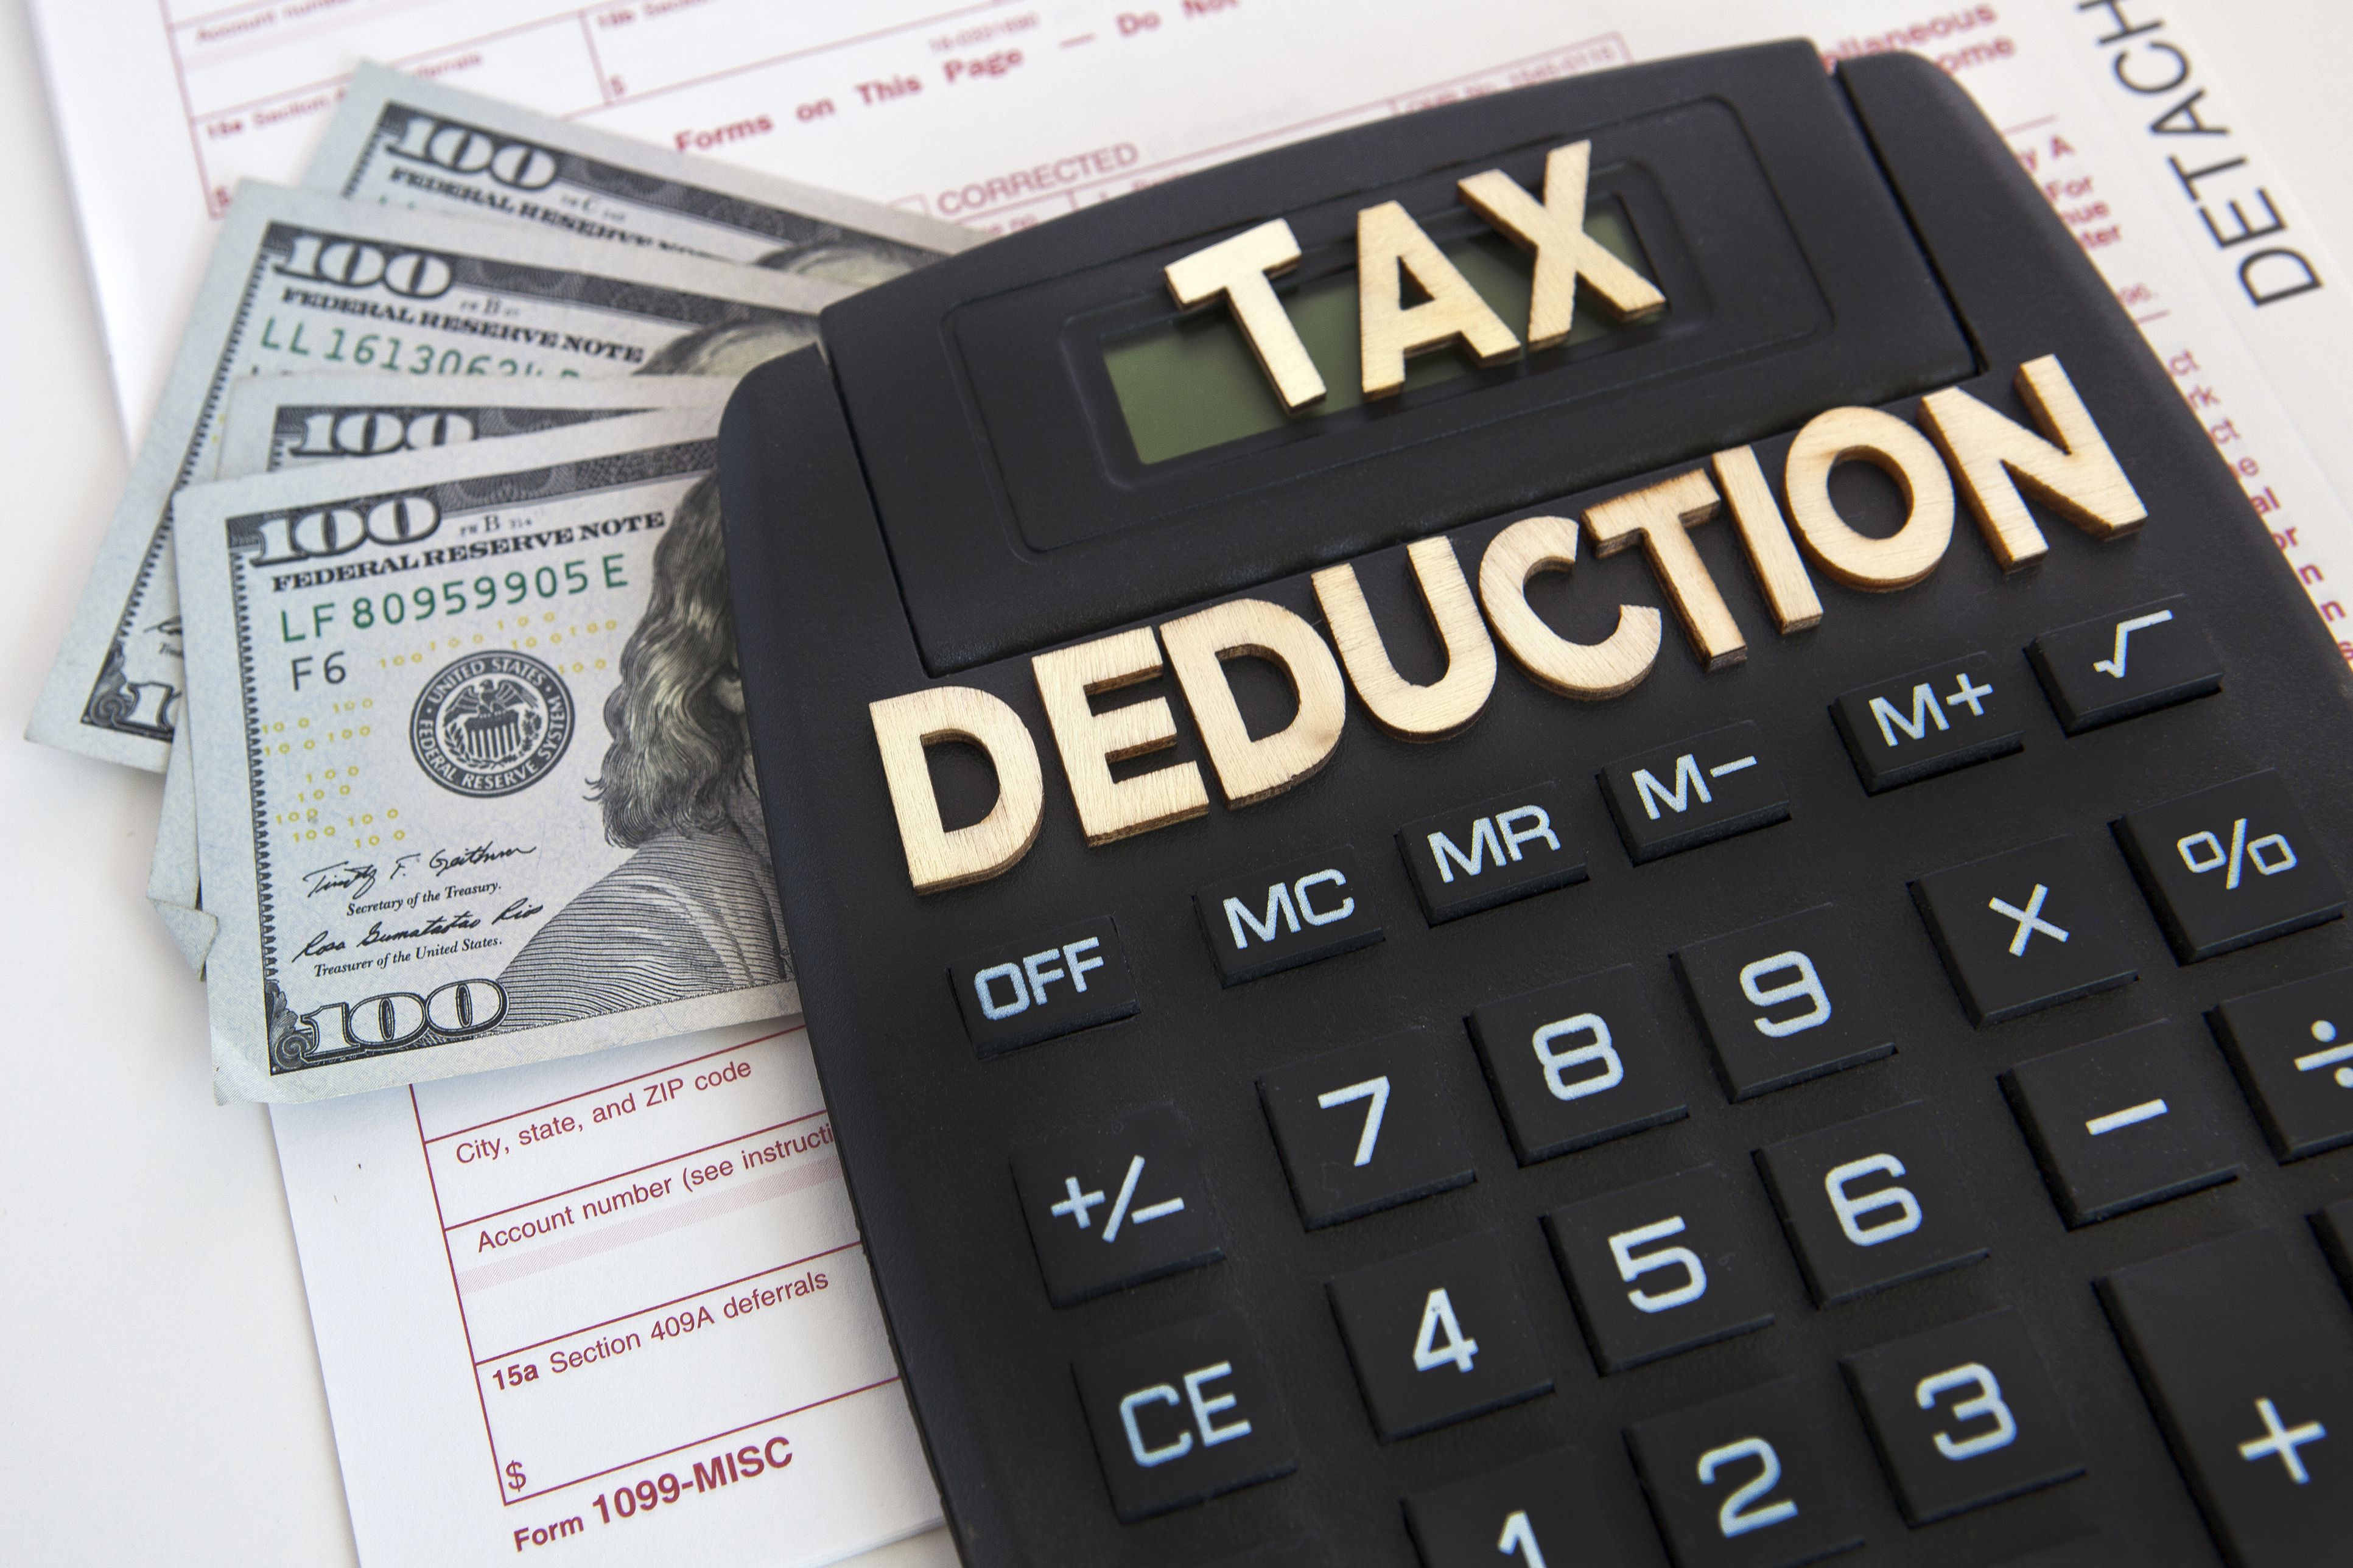 1099 tax form, US currency, calculator